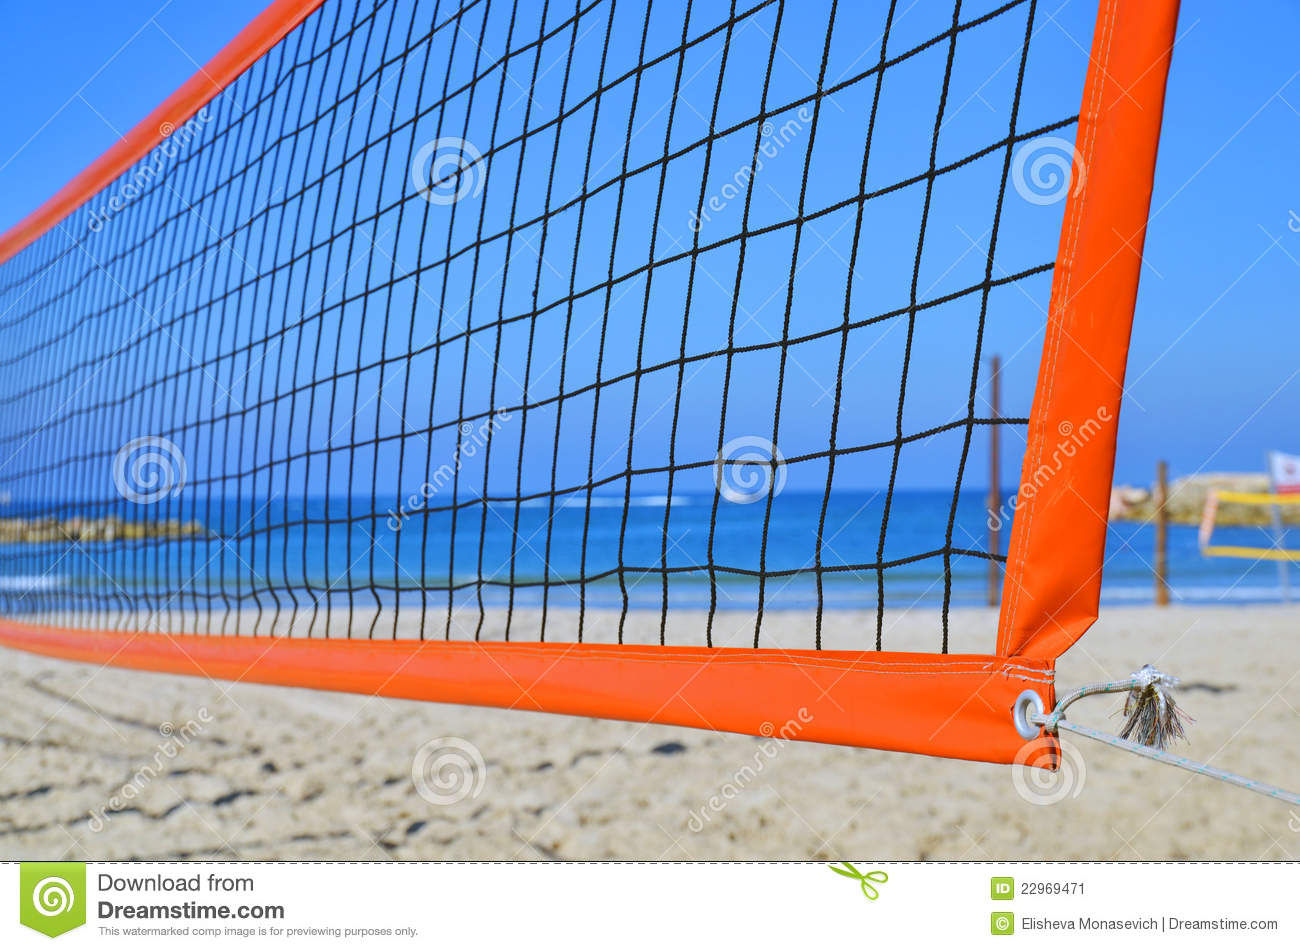 Volleyball Net On A Beach Stock Image 22969471